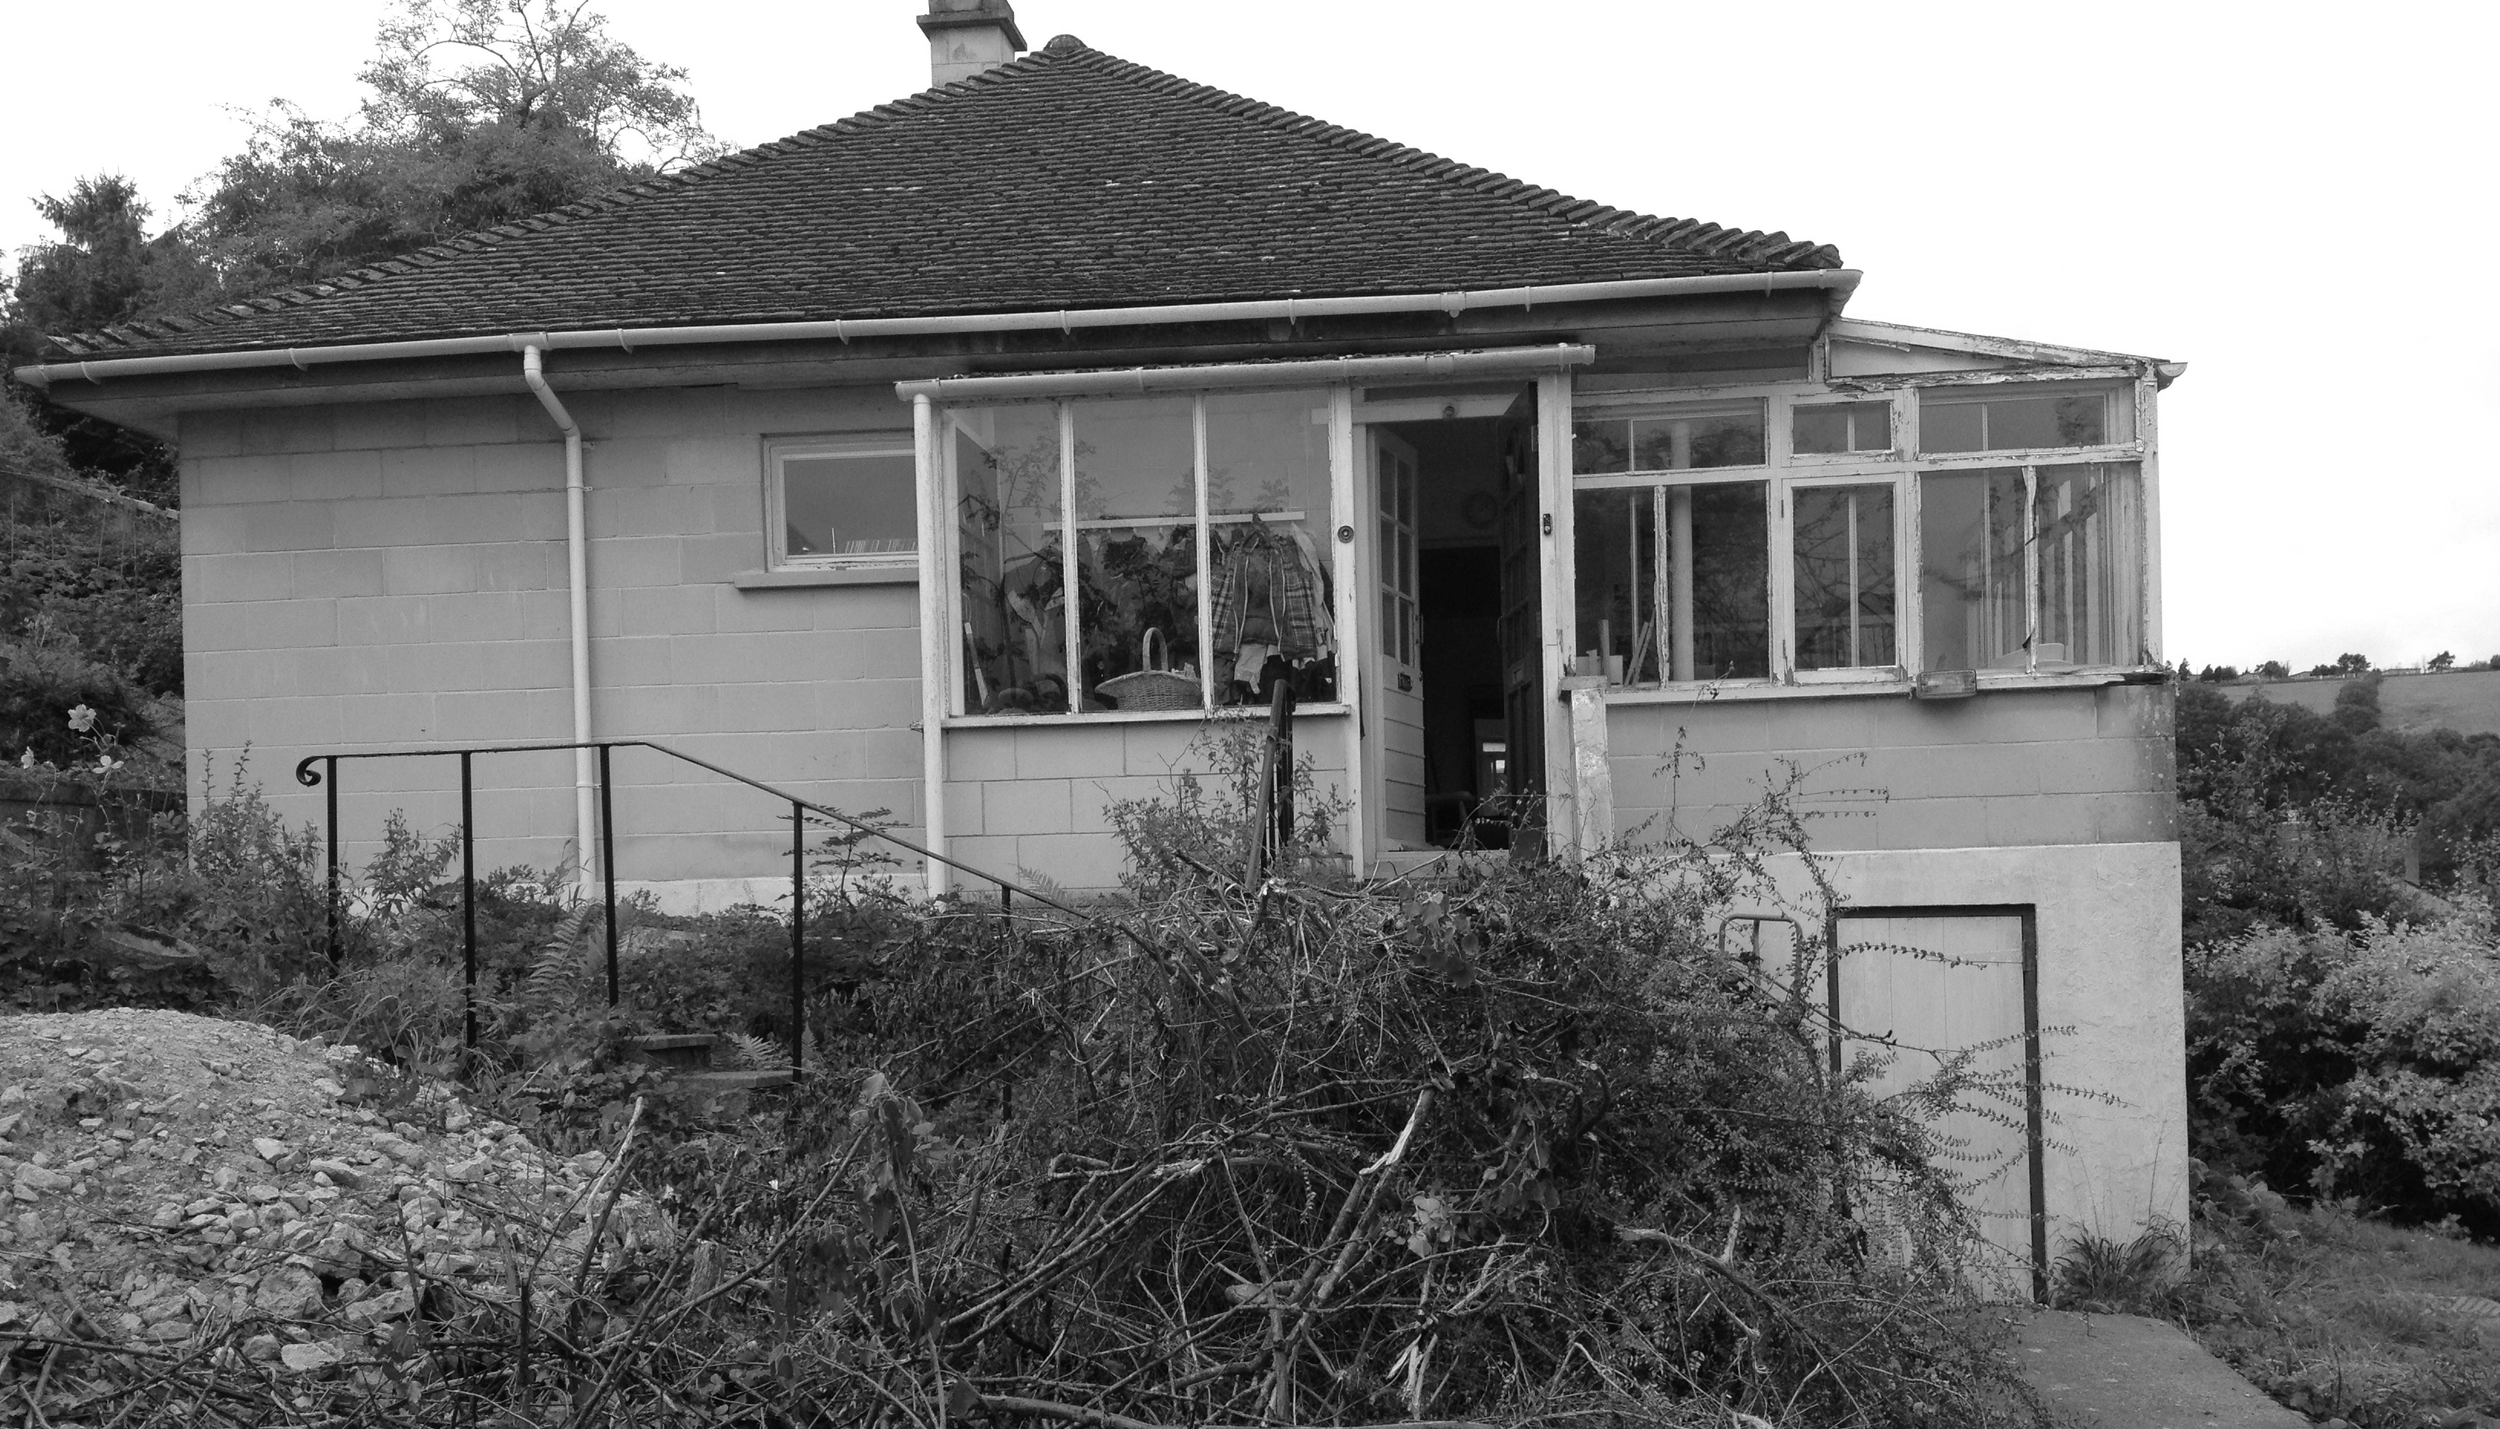 Before: The two bedroom 1950s bungalow had amazing potential